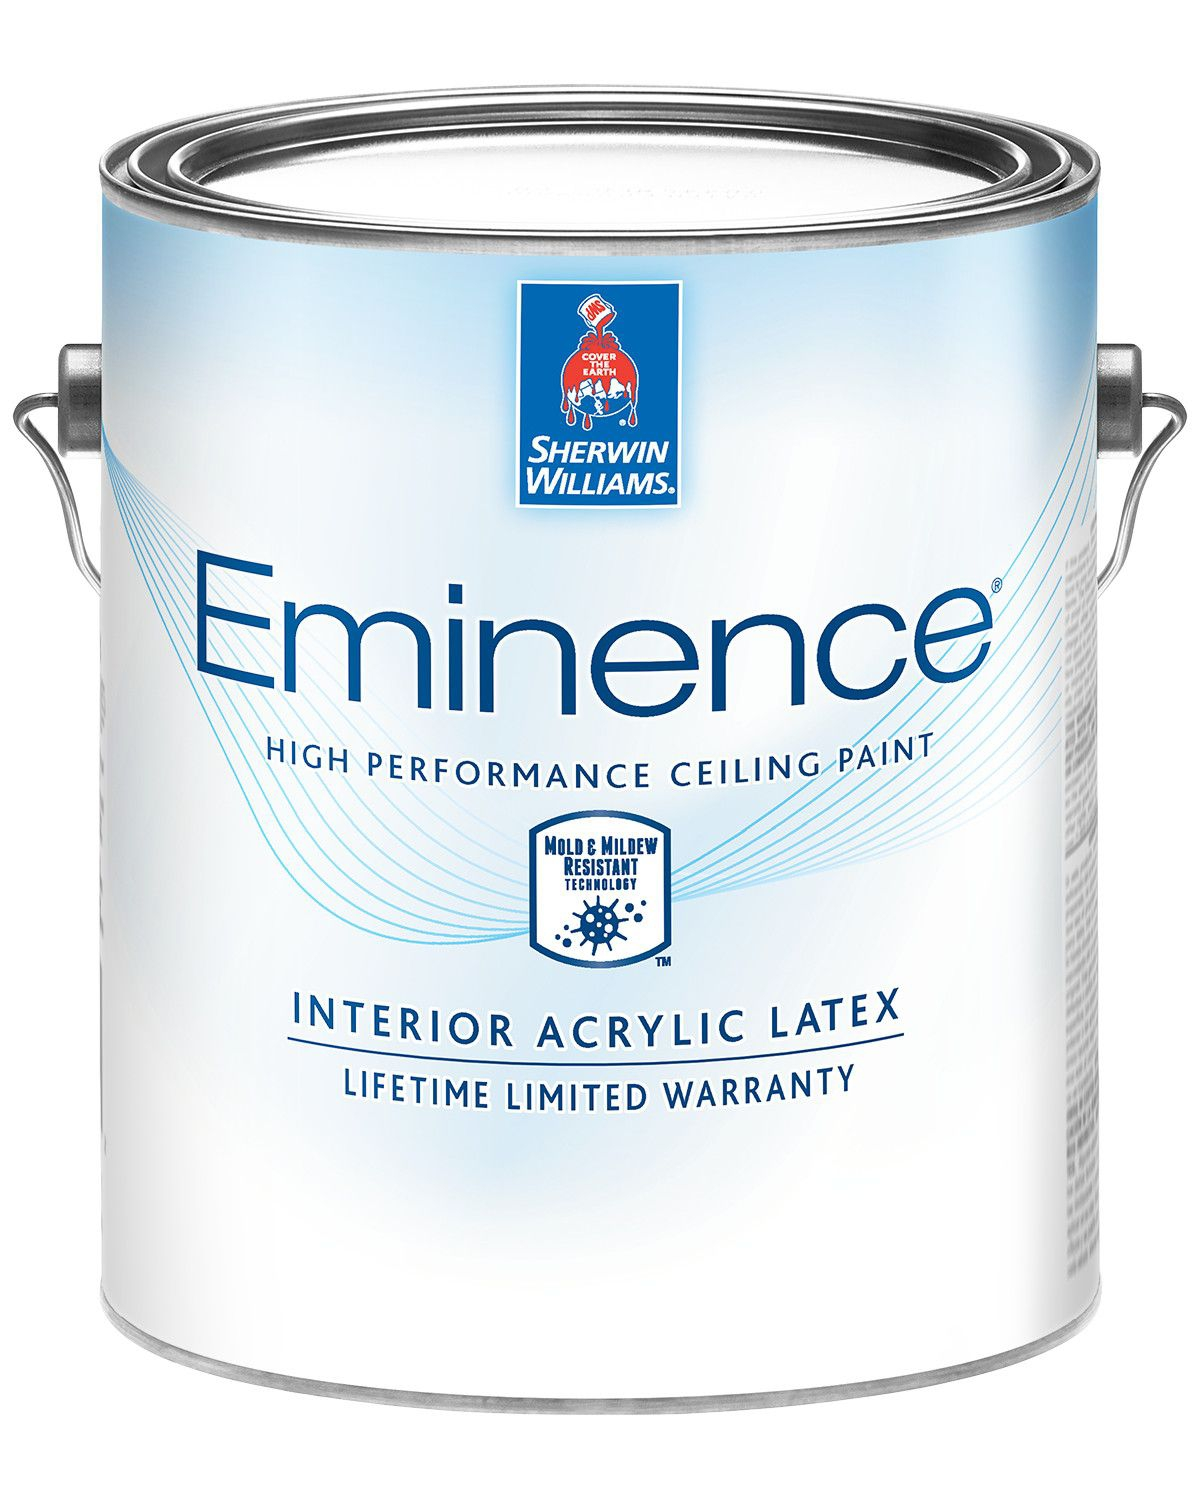 Eminence paint can